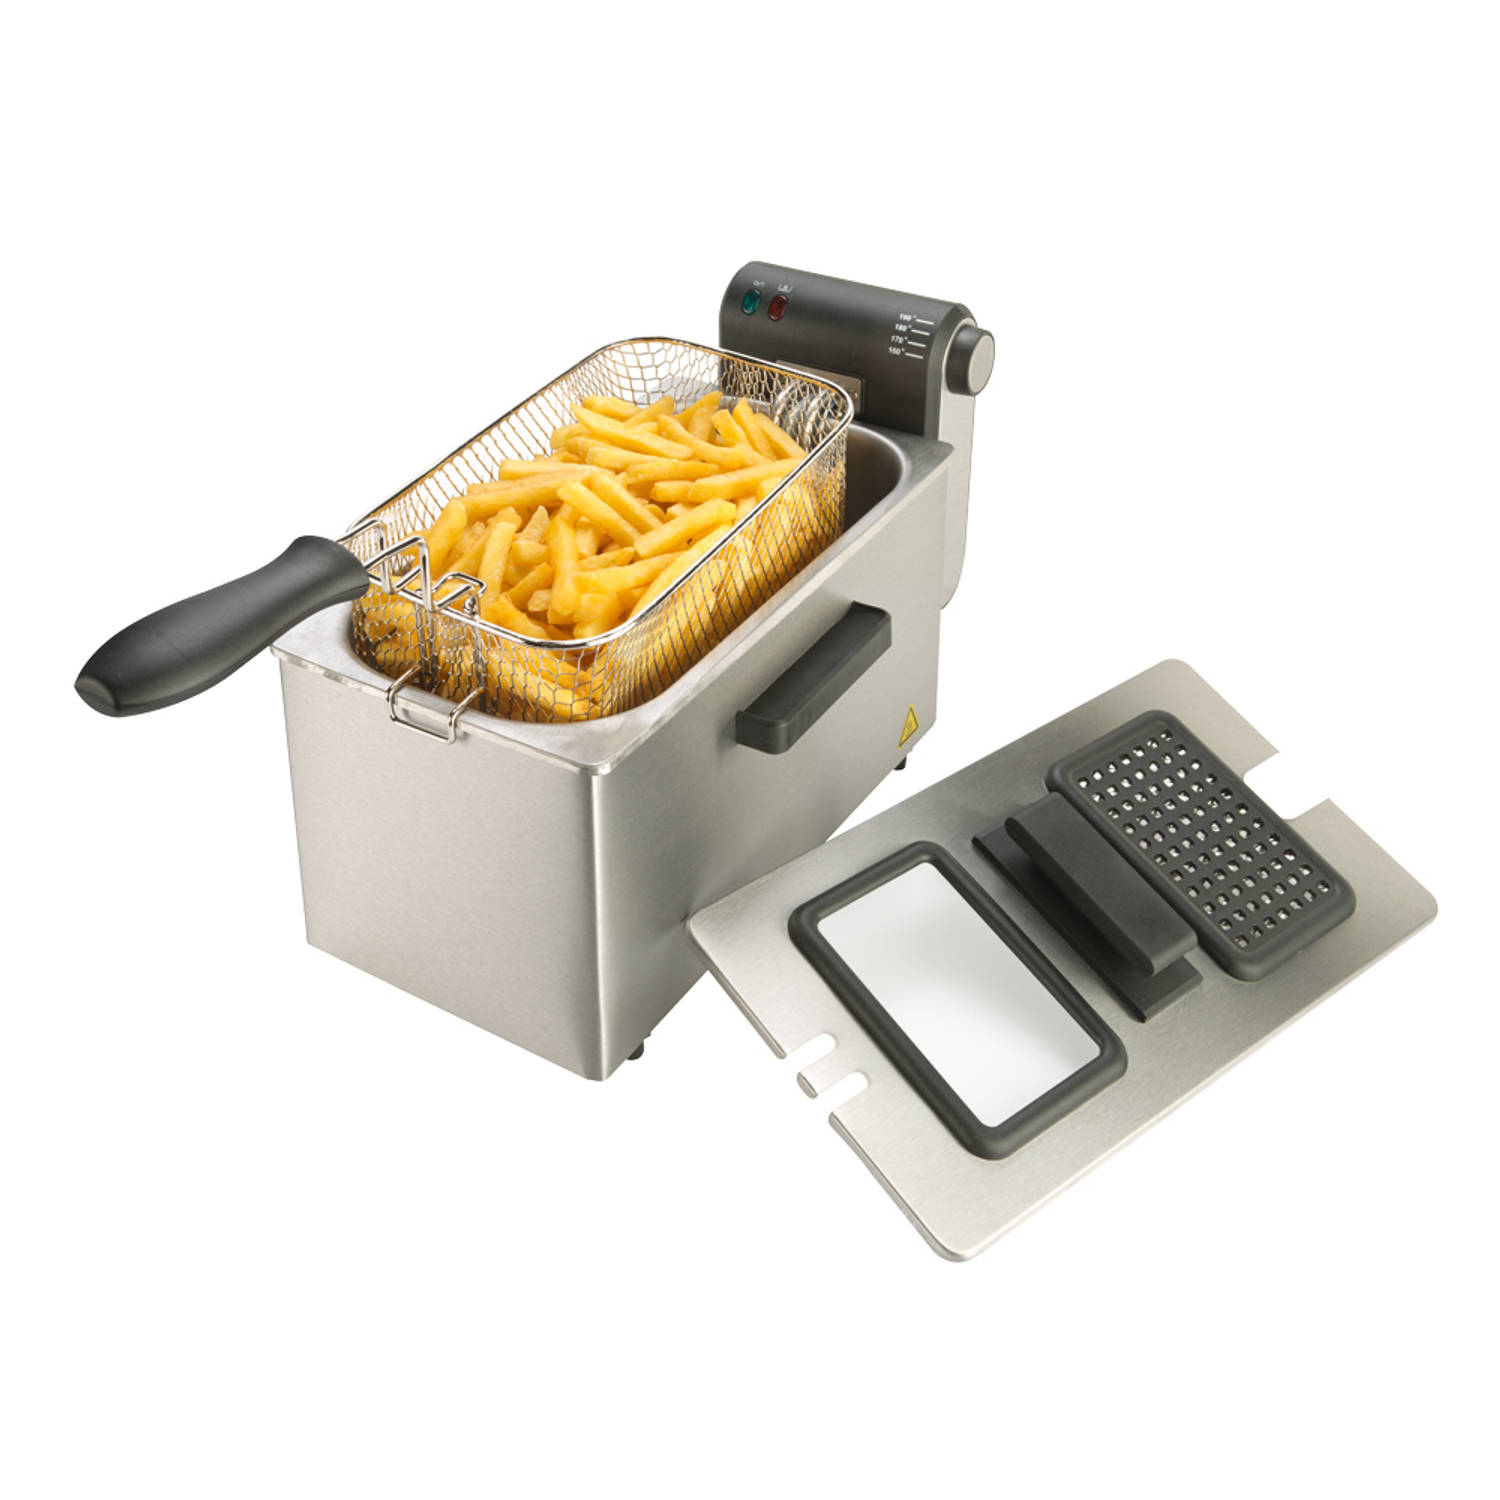 Korting Bourgini friteuse Classic Deep Fryer Plus 3L